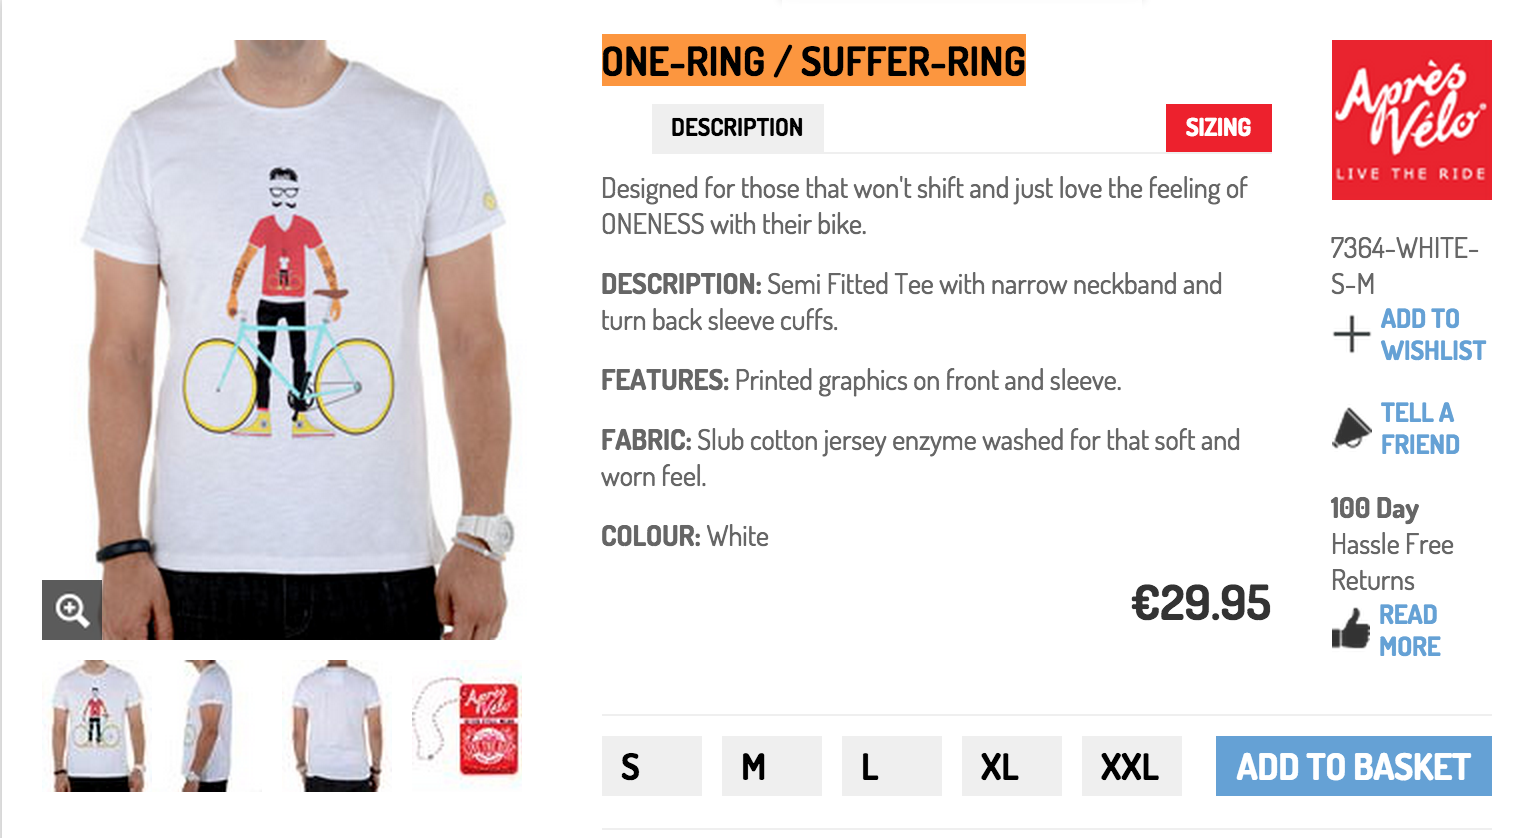 #ProductReview | ONE-RING / SUFFER-RING T-Shirt by Après Vélo